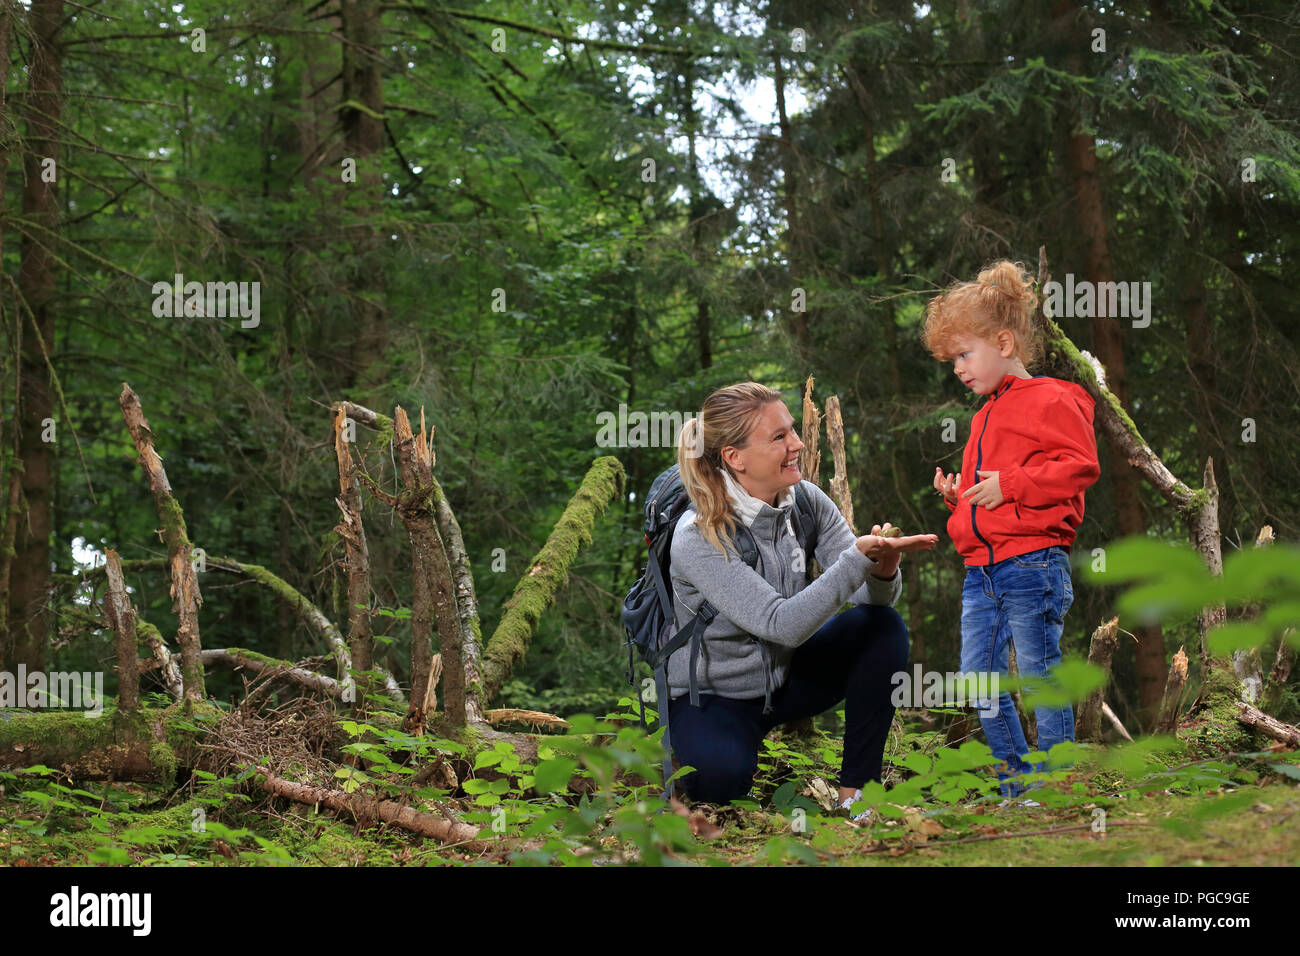 Outdoors with Kid in forest showing things - Stock Image